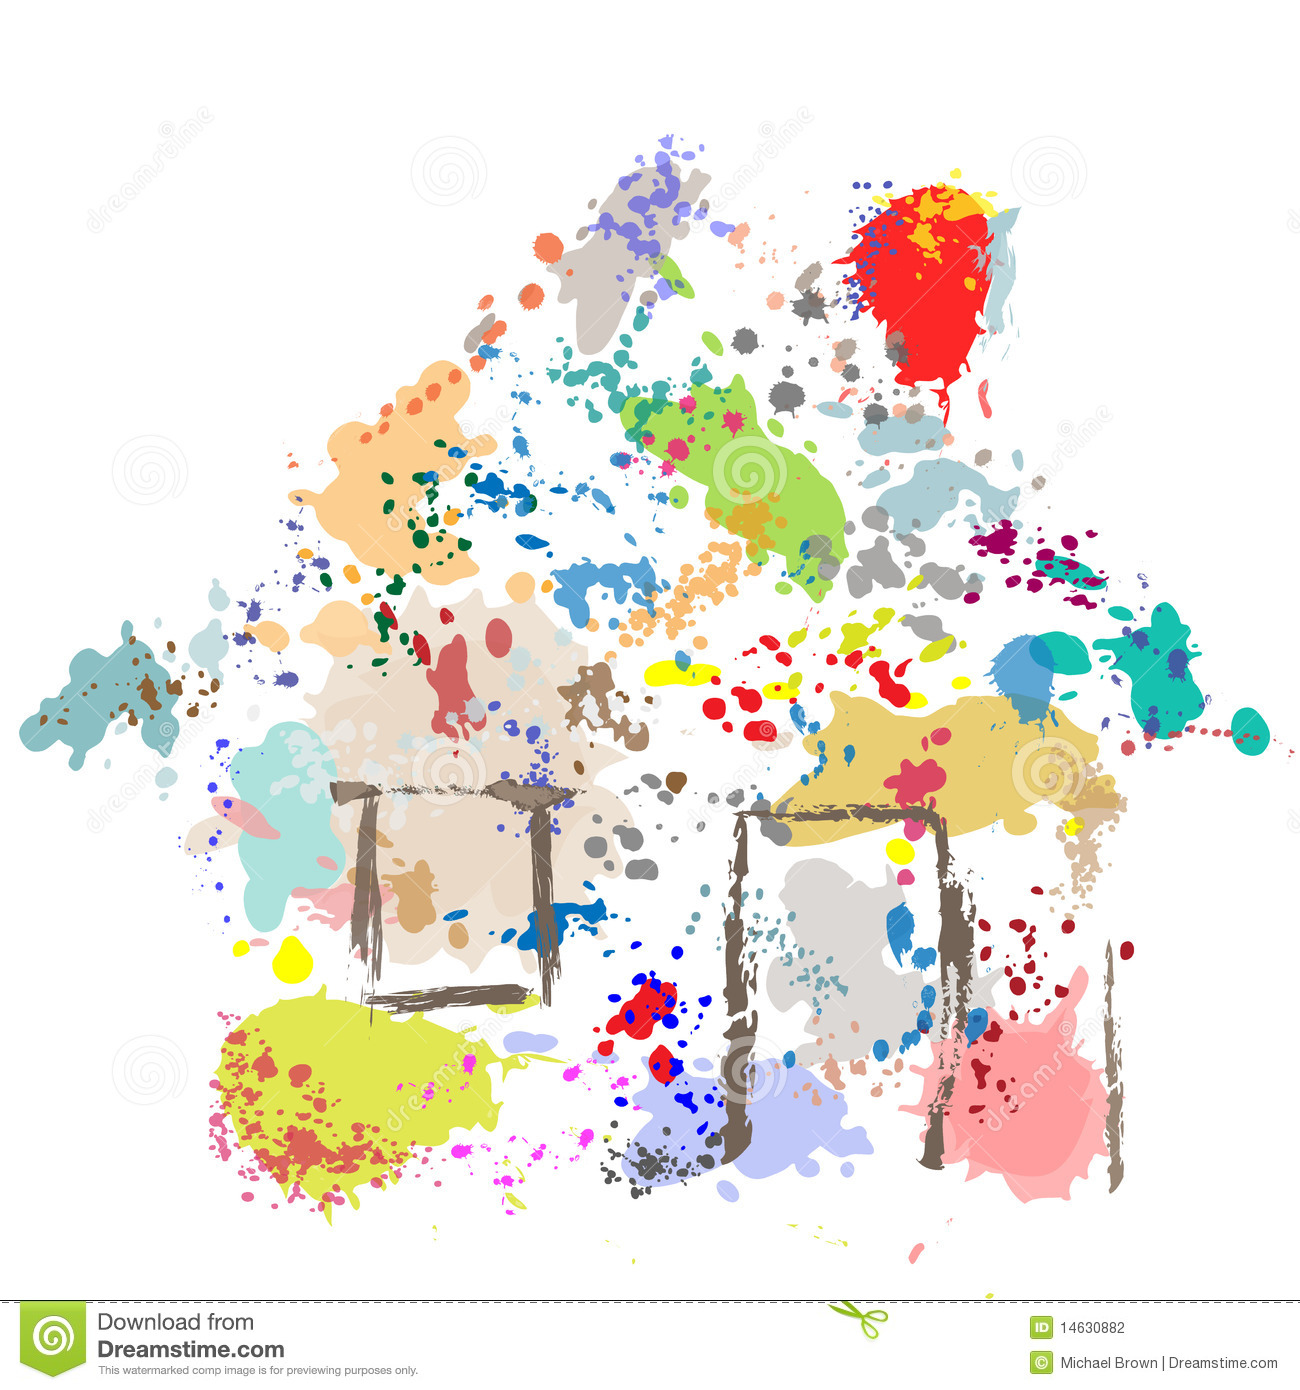 House Paint Drops Splatter Grunge Home Abstract Stock